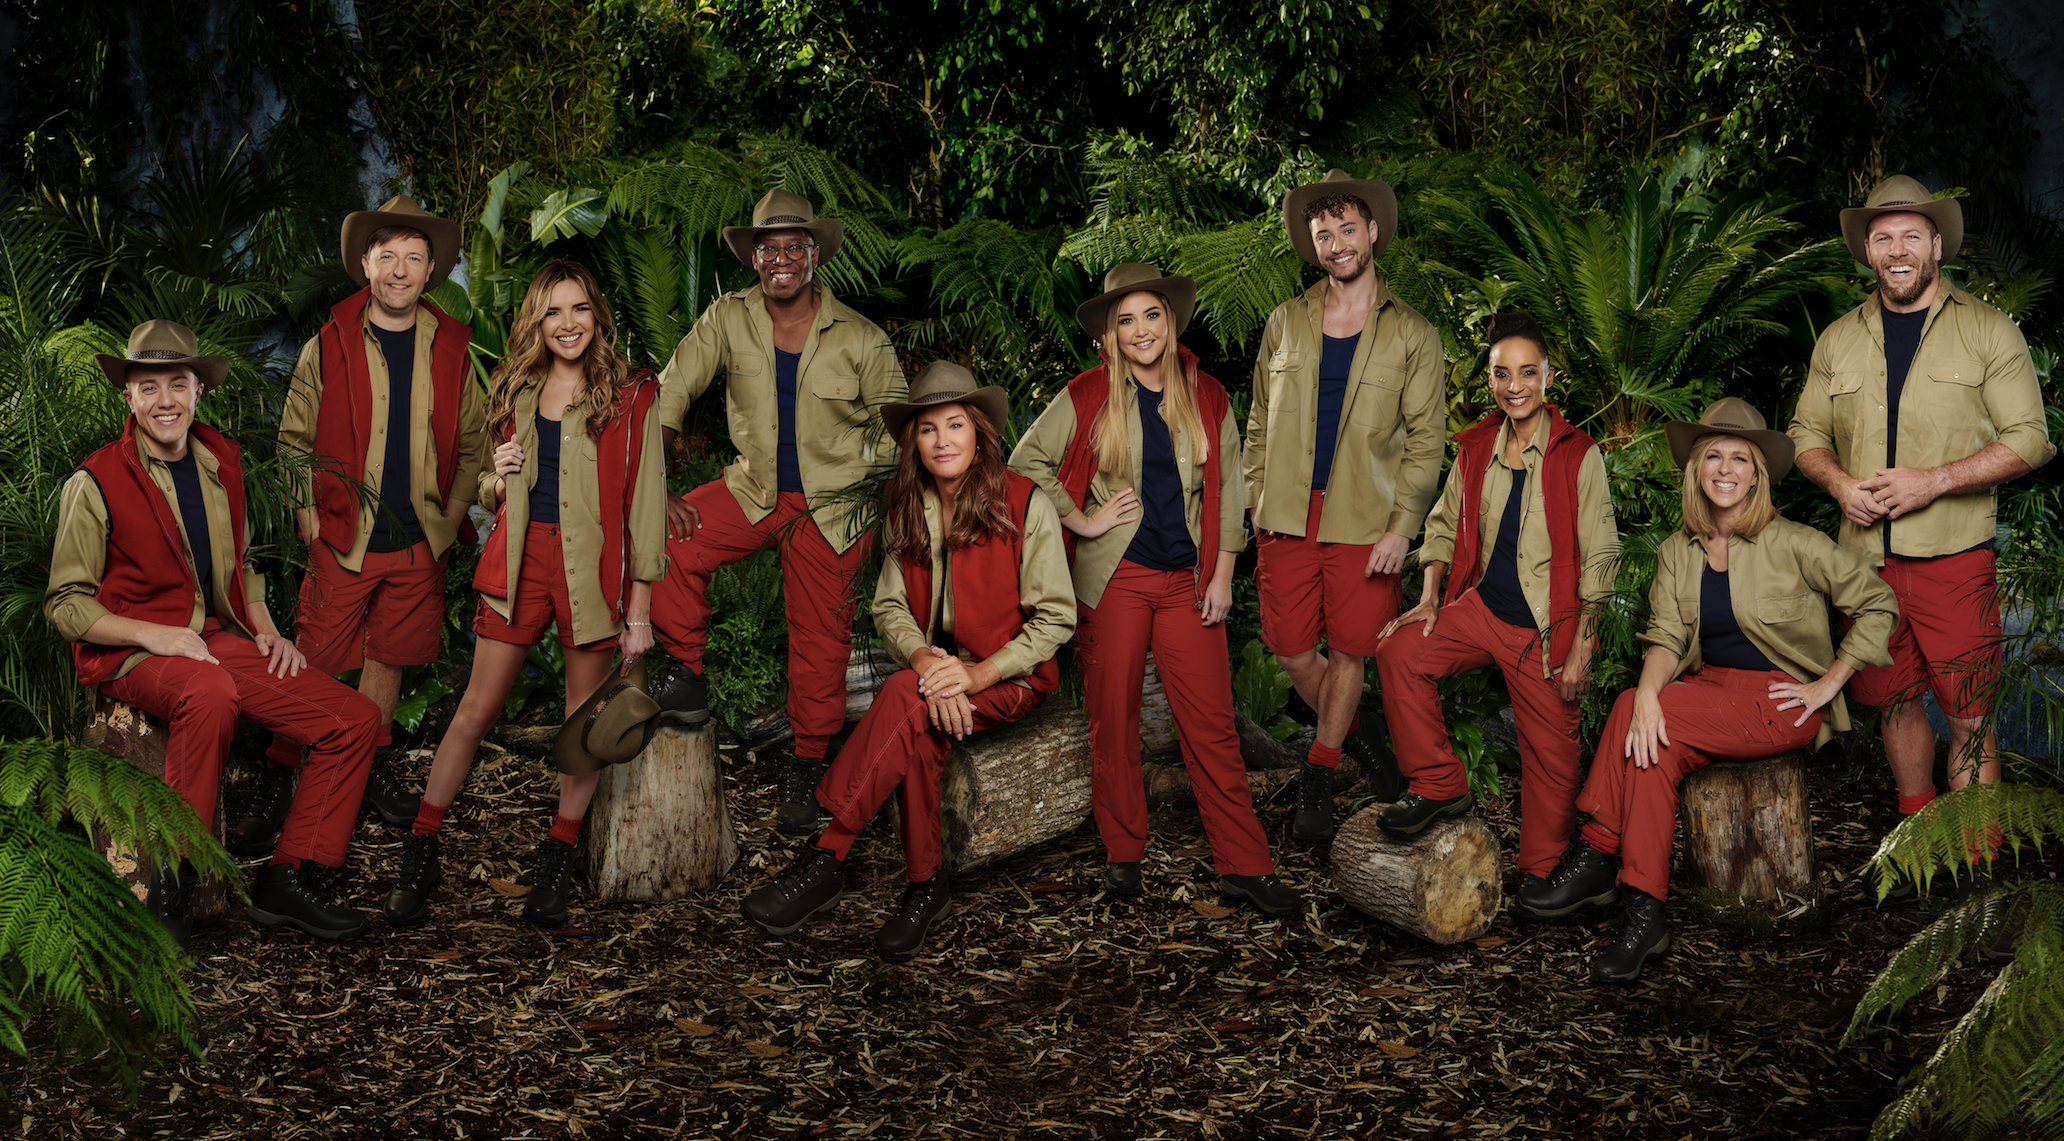 I'm a Celebrity 2019: Meet the famous faces entering the jungle